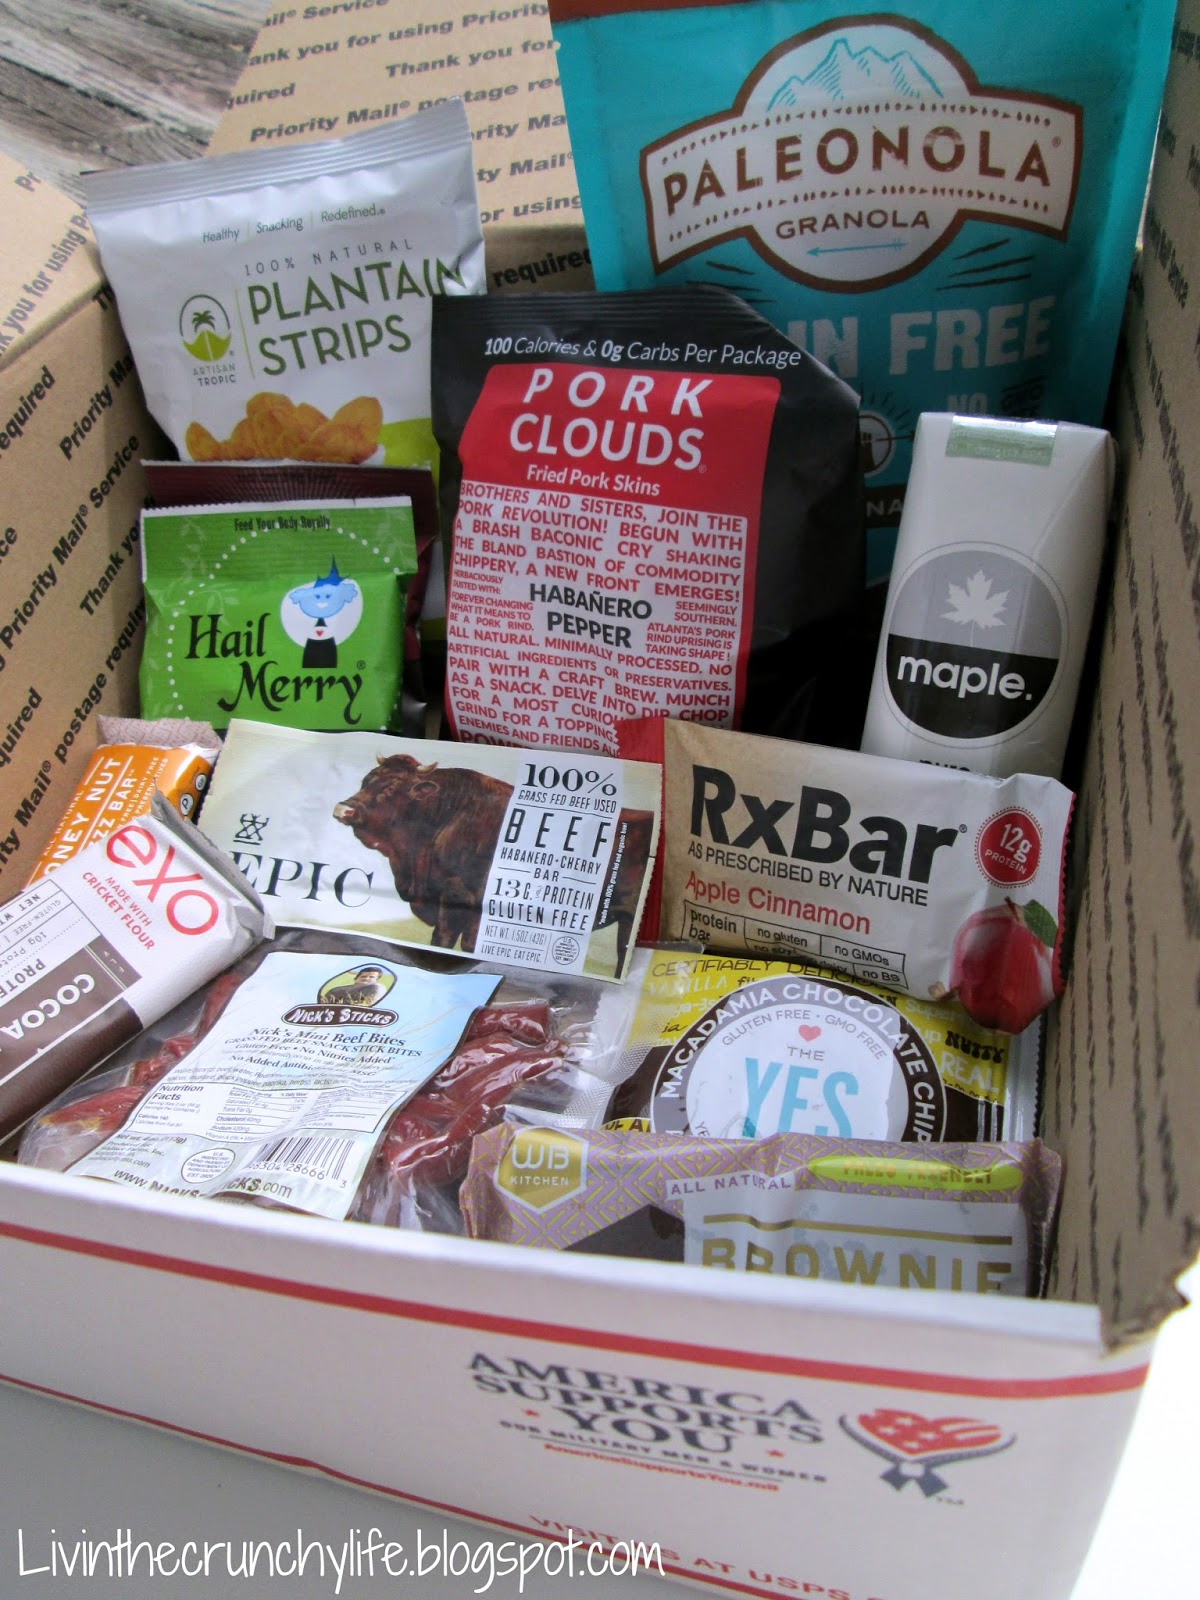 Gluten Free Military Care Packages: Paleo, Gluten-free, and